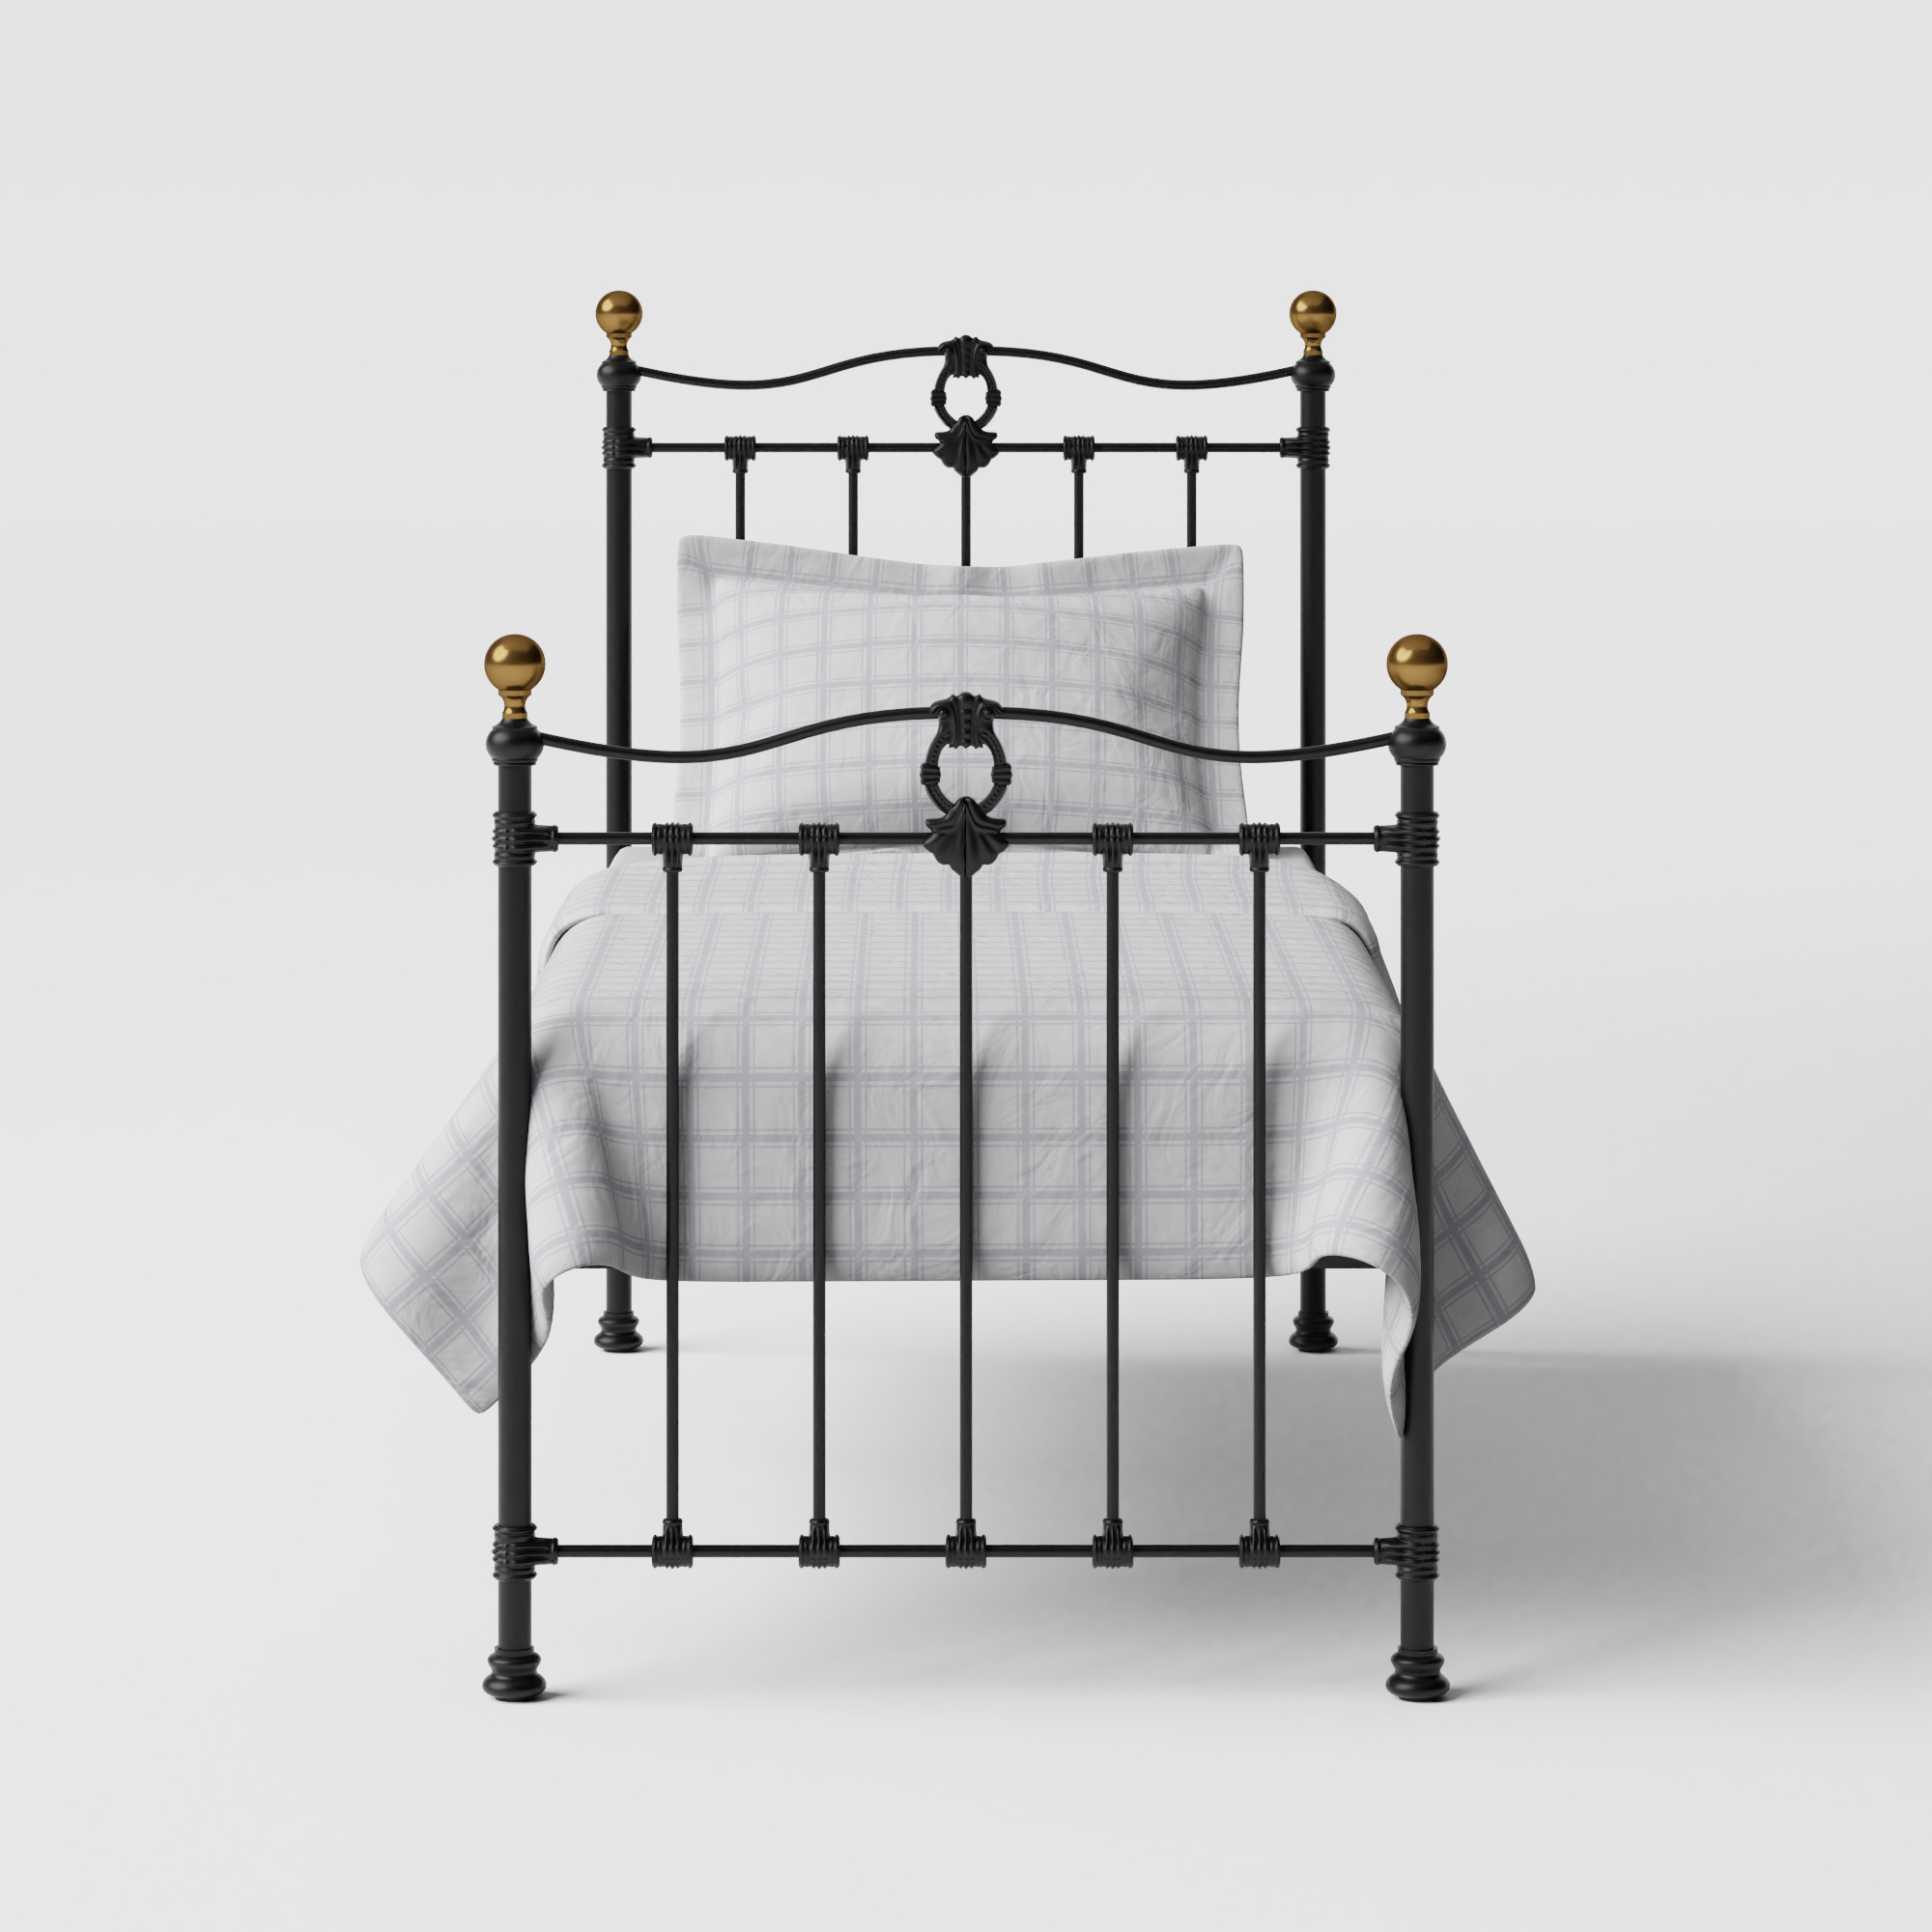 Tulsk iron/metal single bed in black